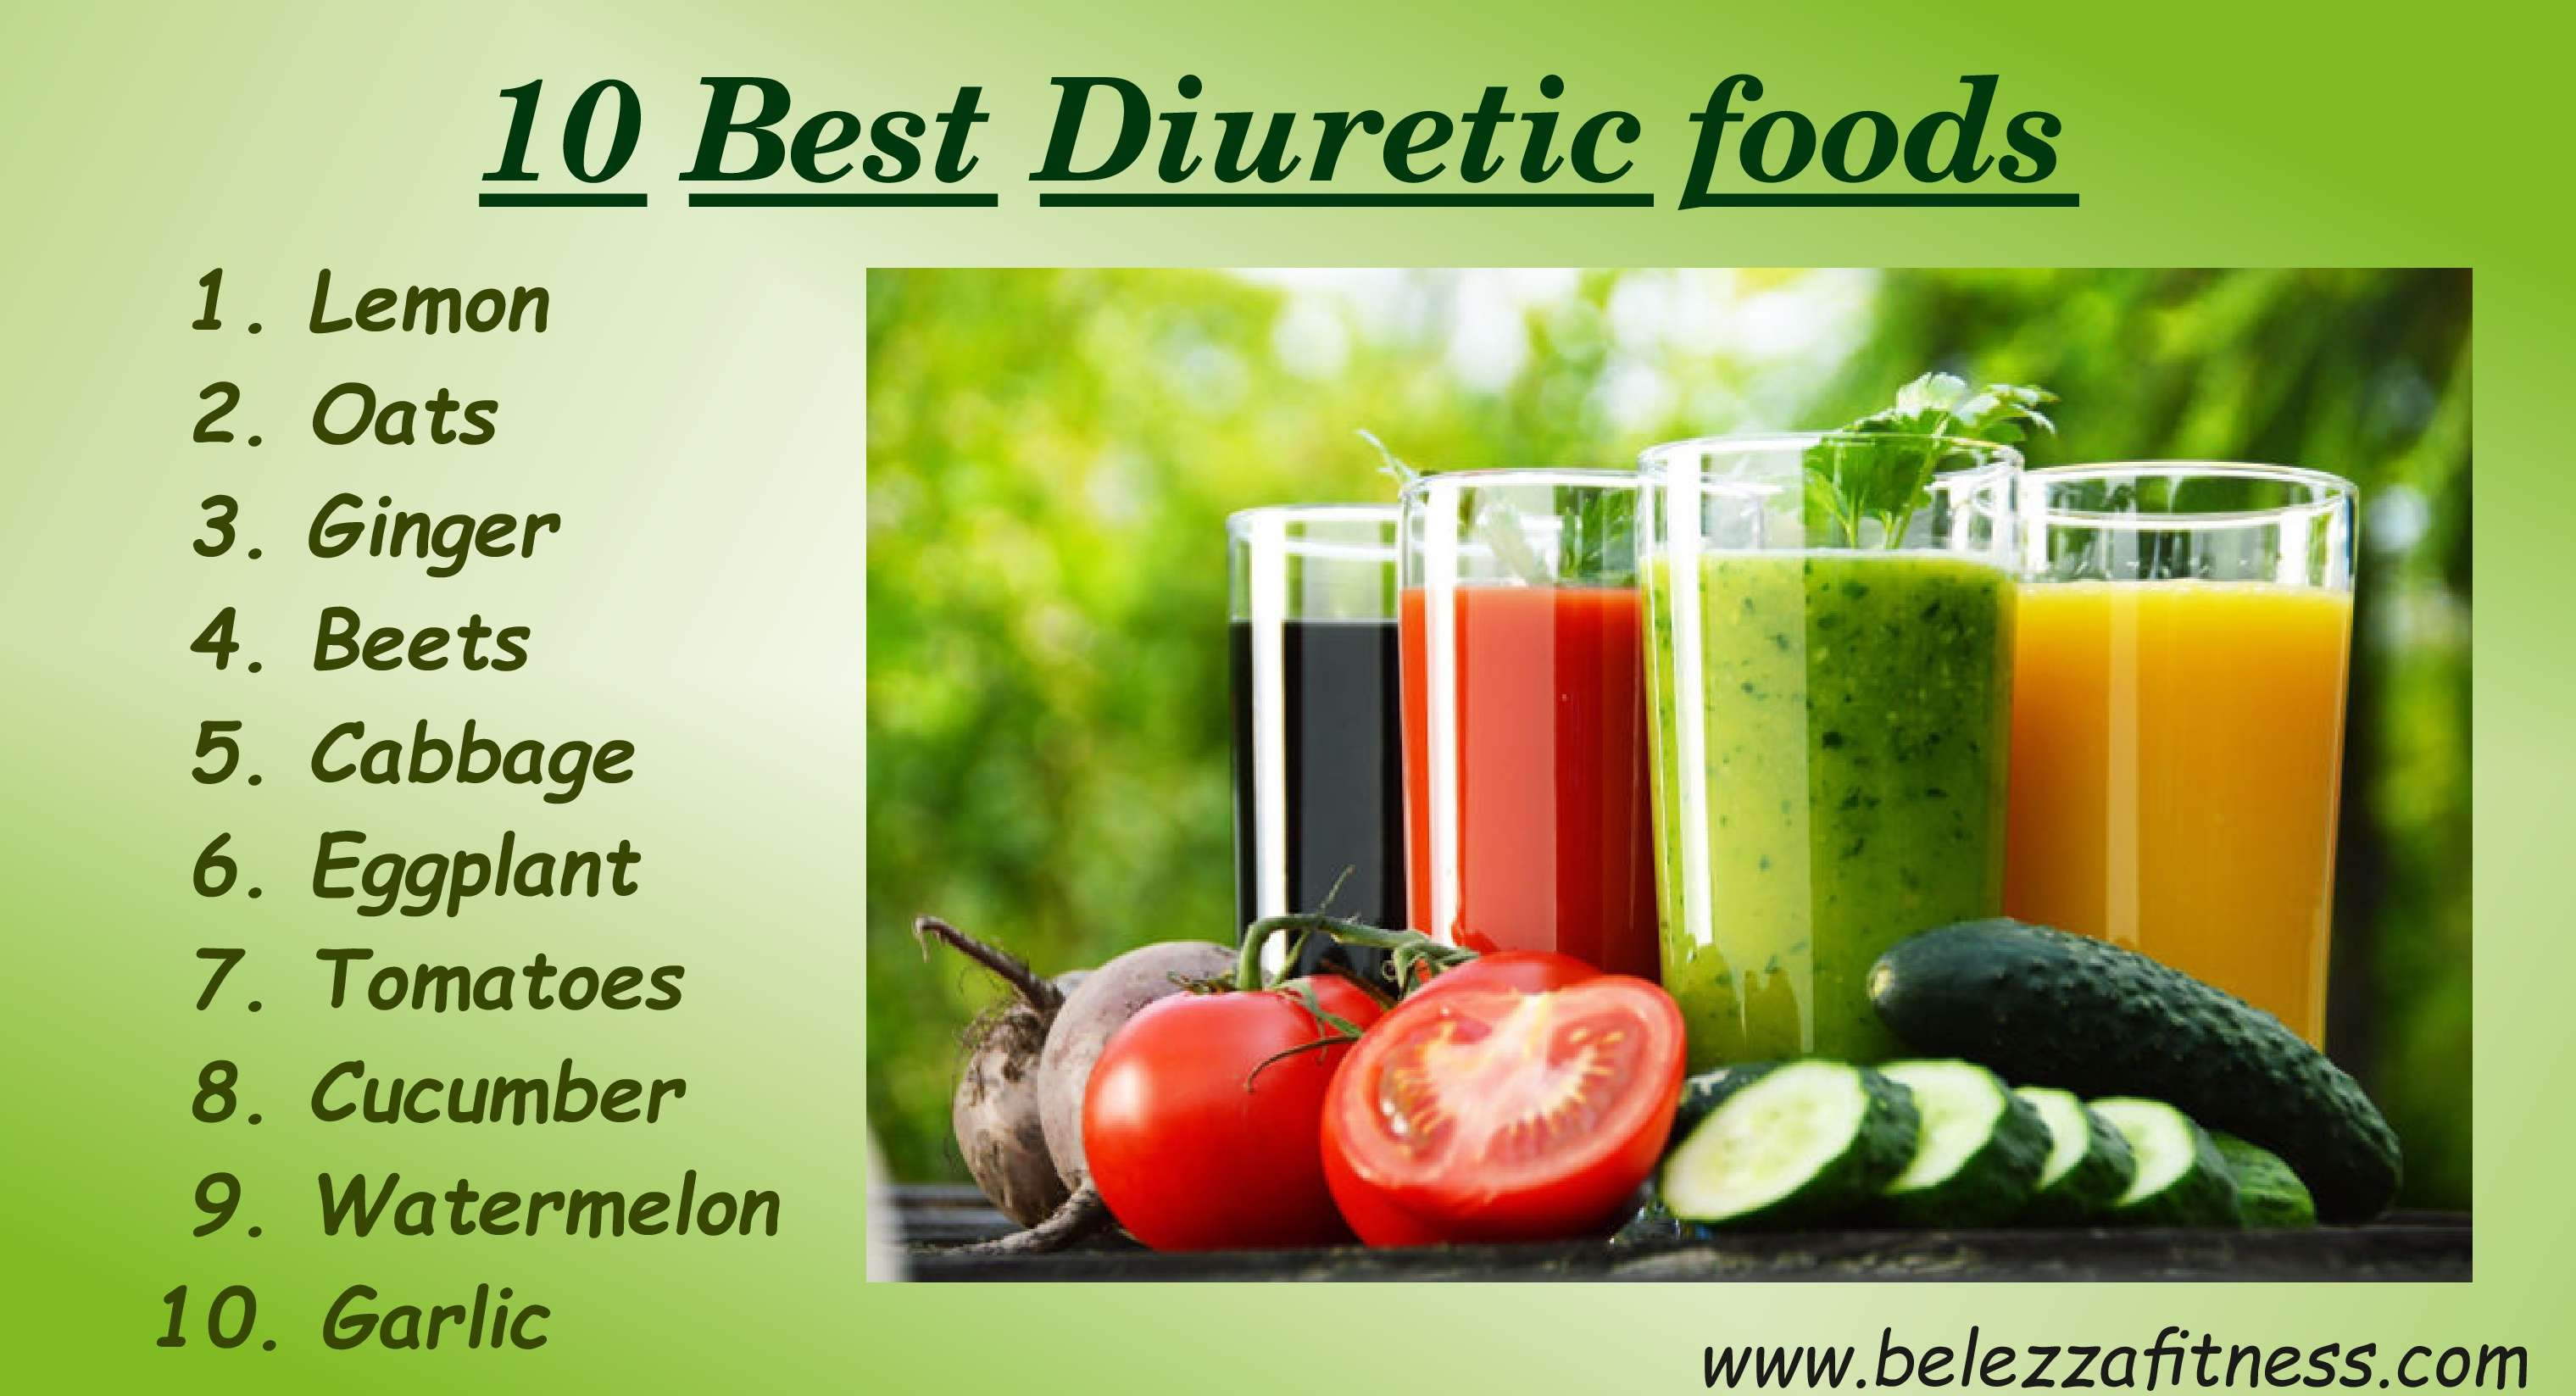 10 Best Diuretic foods